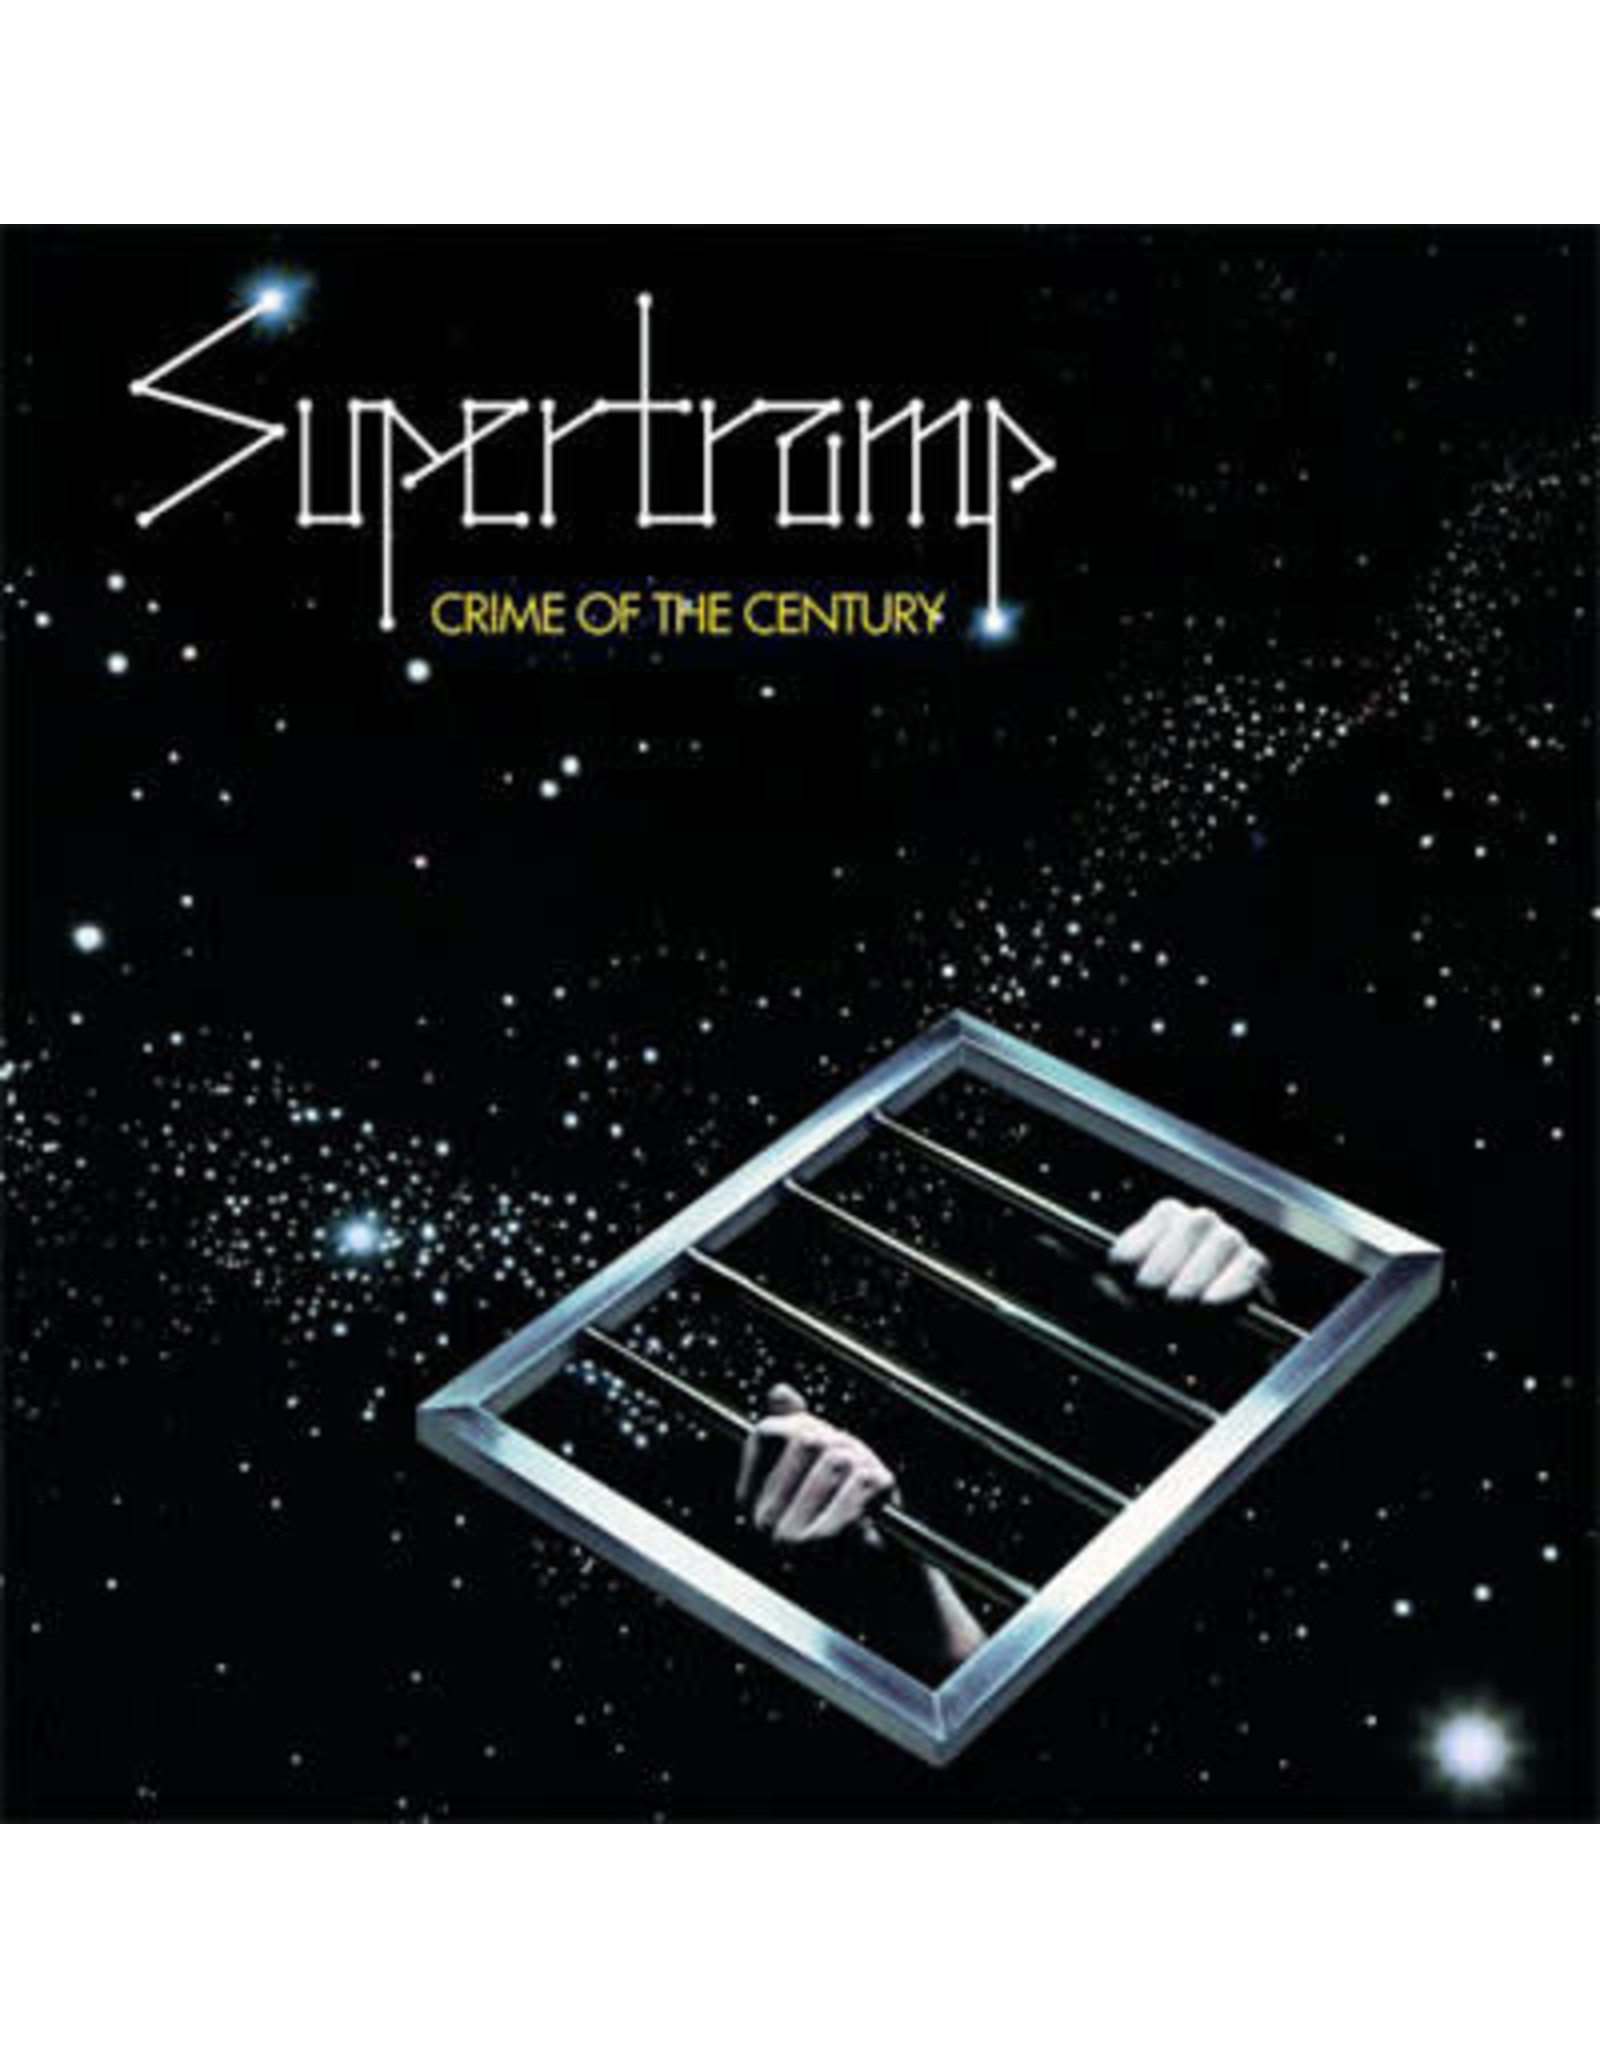 Supertramp - Crime of the Century (2002 RM) CD